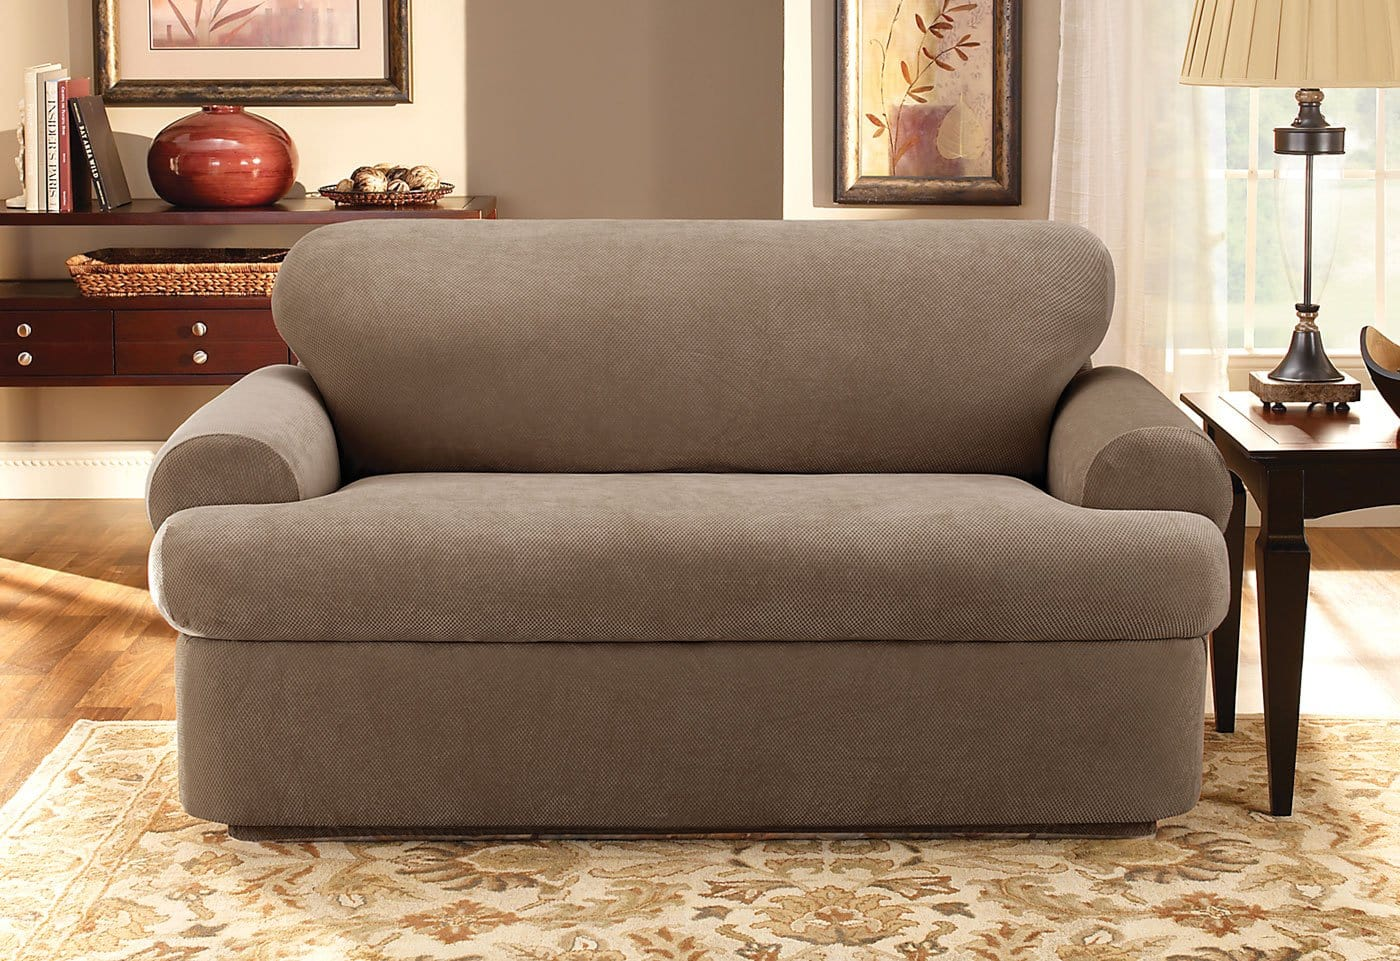 stretch 3 piece t cushion sofa slipcover two seat pique three with back loveseat